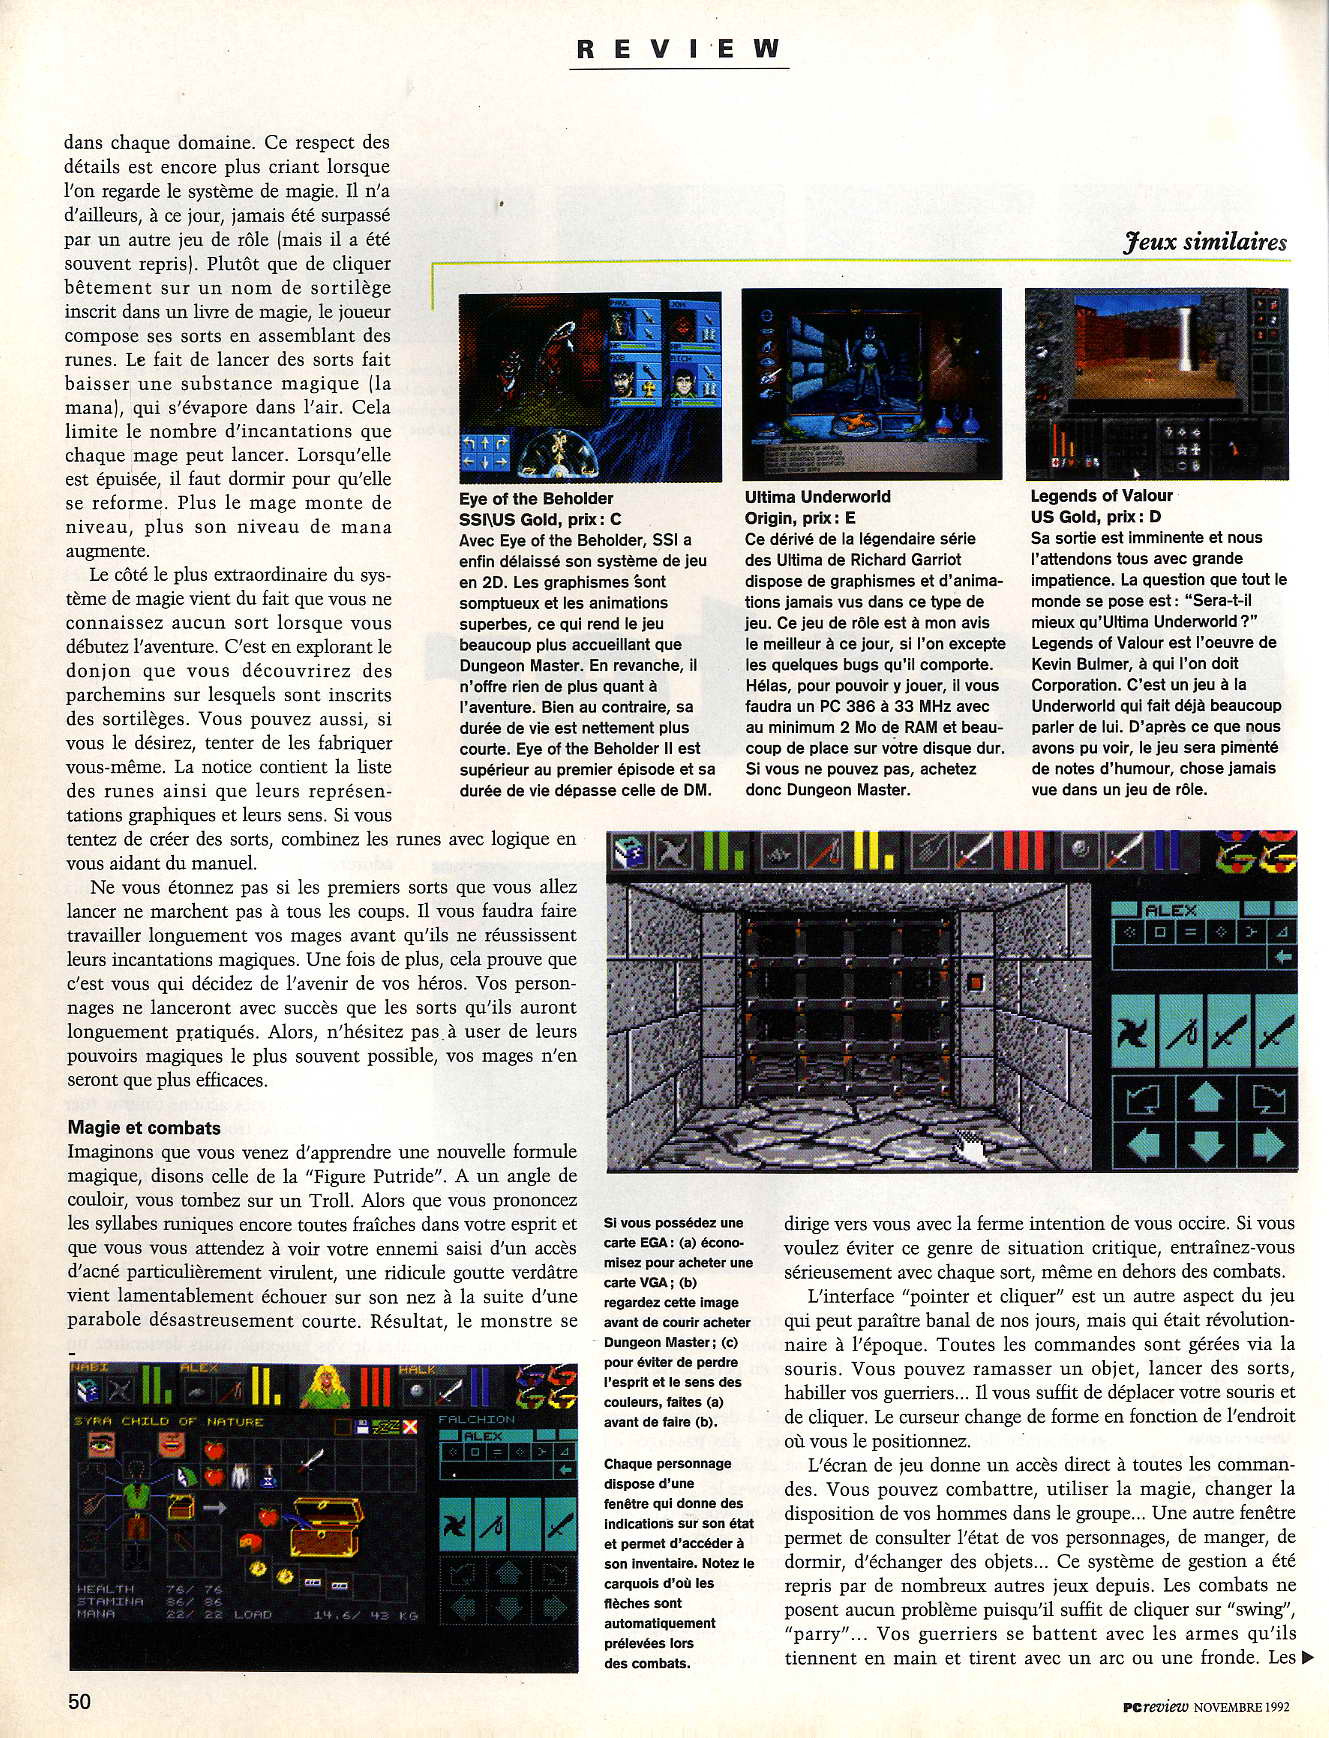 Dungeon Master for PC Review published in French magazine 'PC Review', Issue #2 November 1992, Page 50